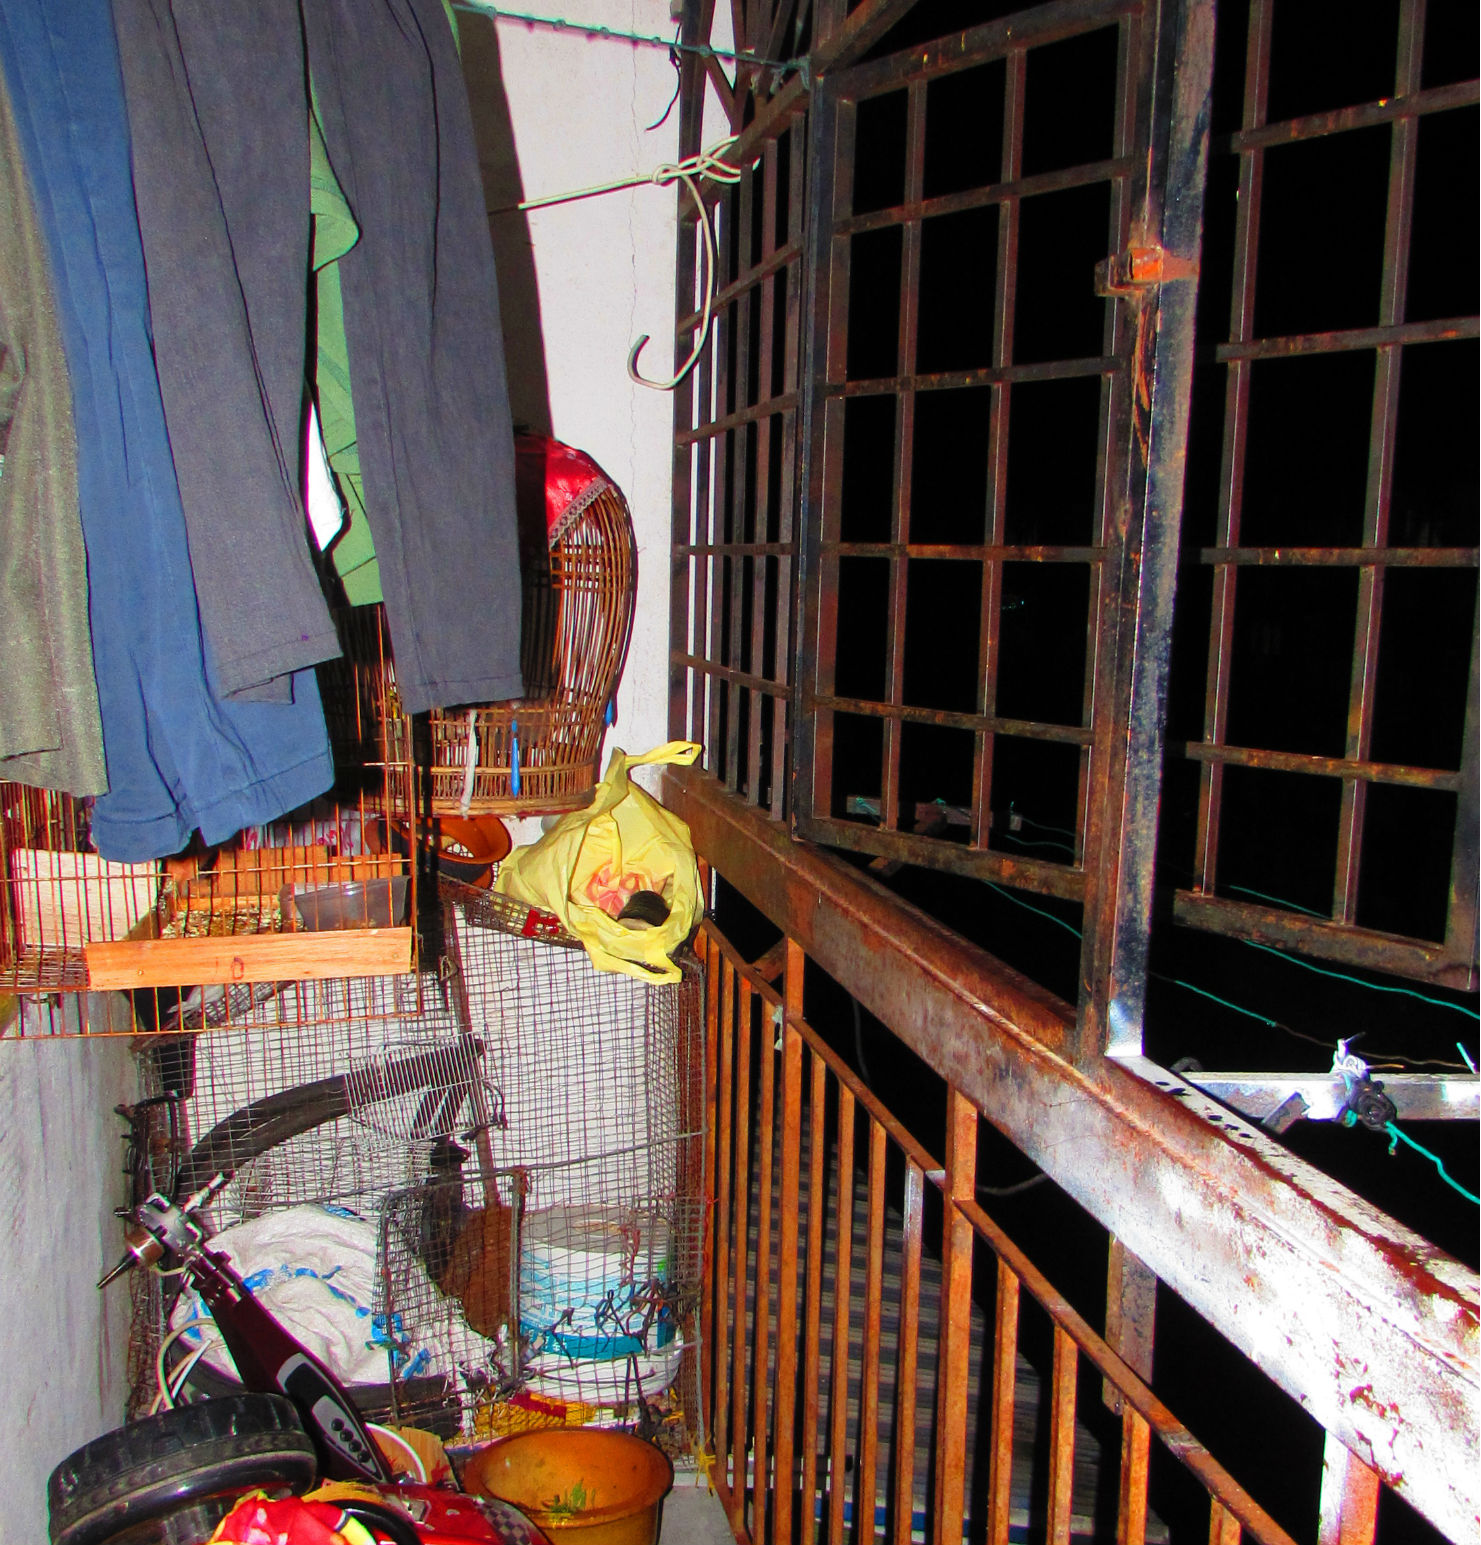 The balcony with empty birdcages...